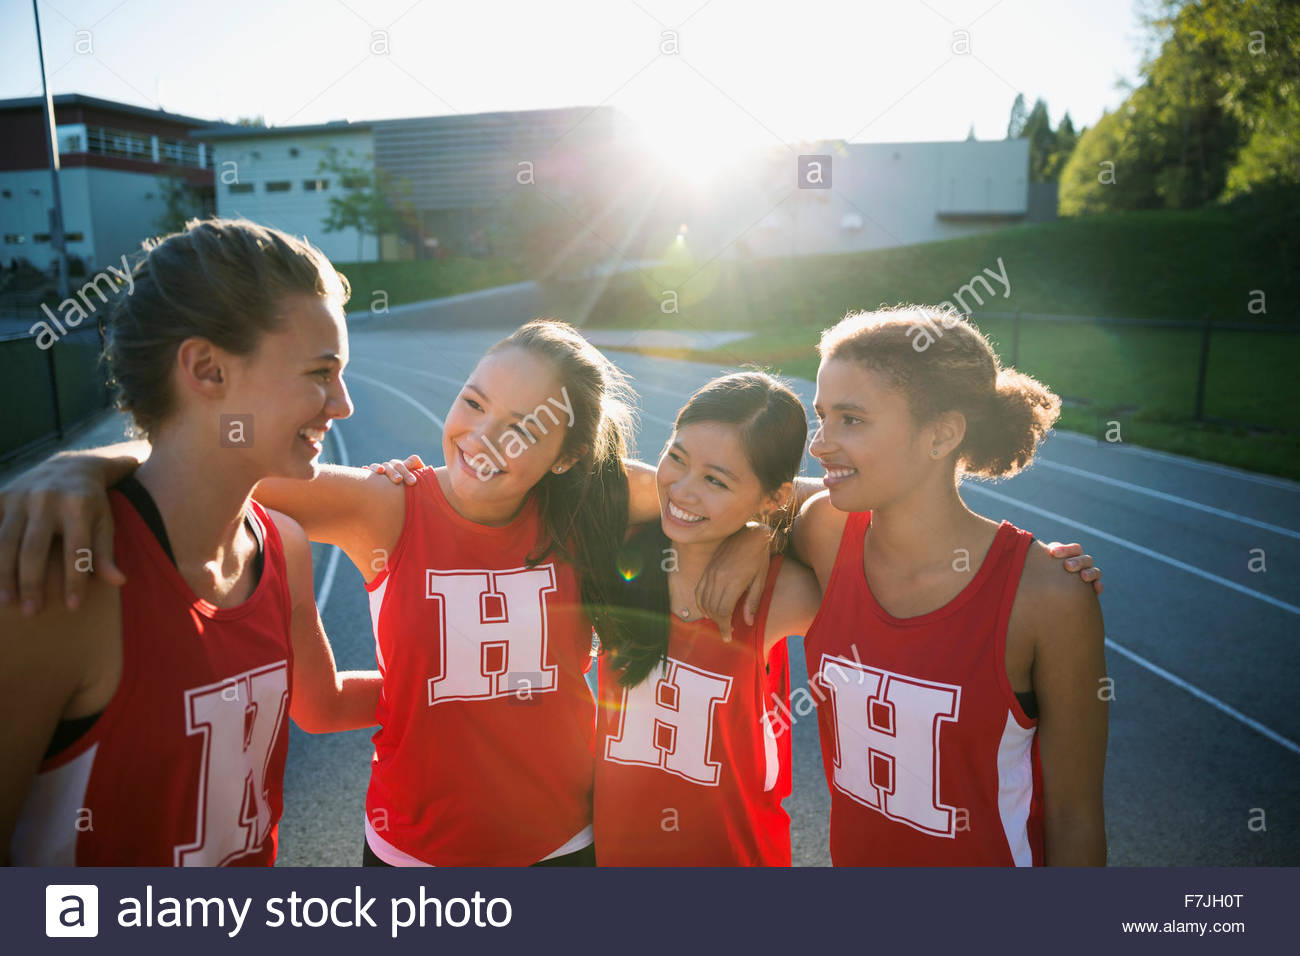 Female high school track and field athletes hugging - Stock Image